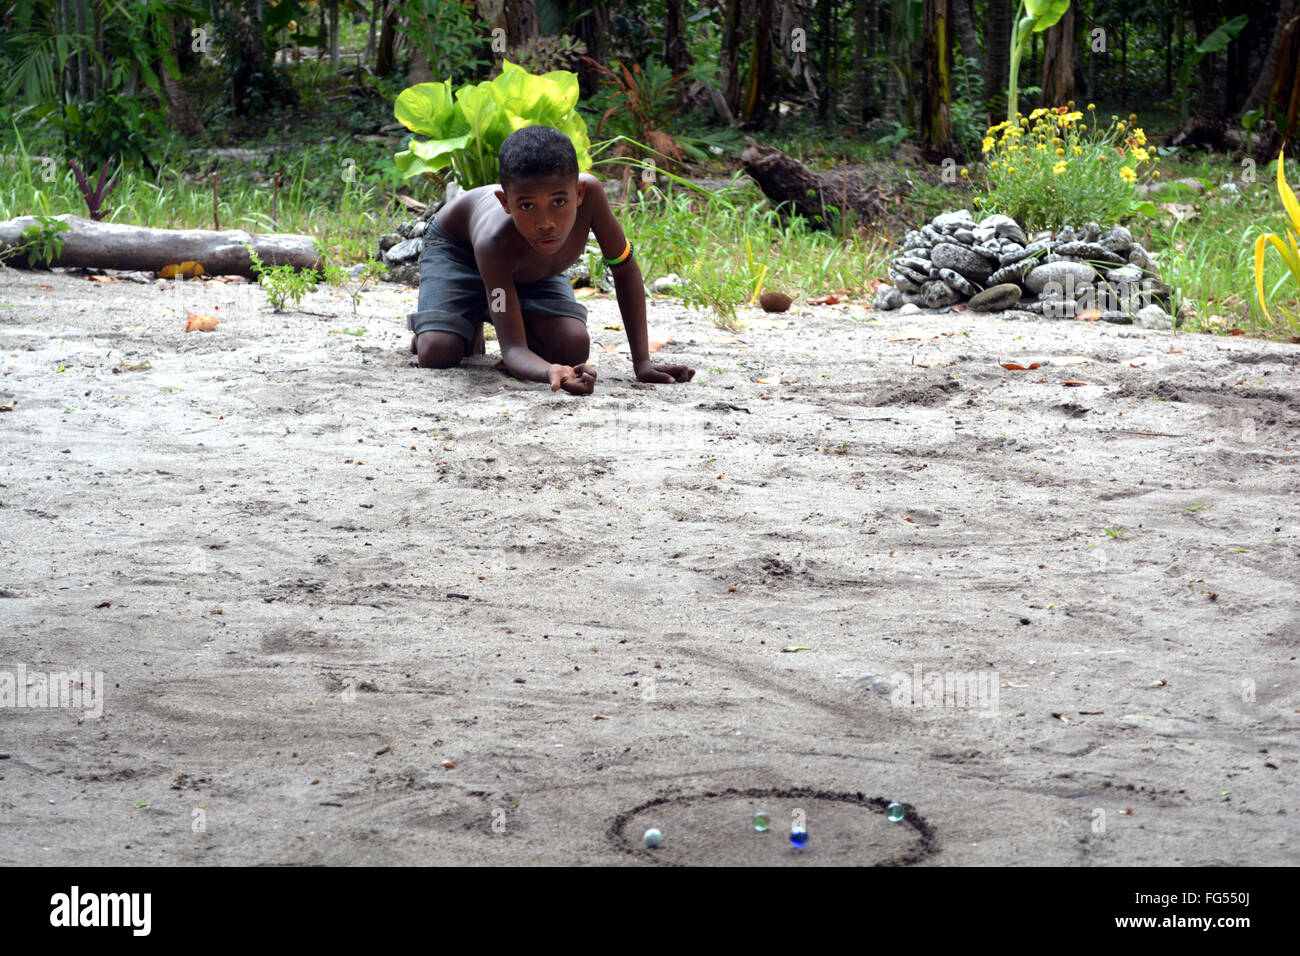 boy playing marbles in PNG - Stock Image